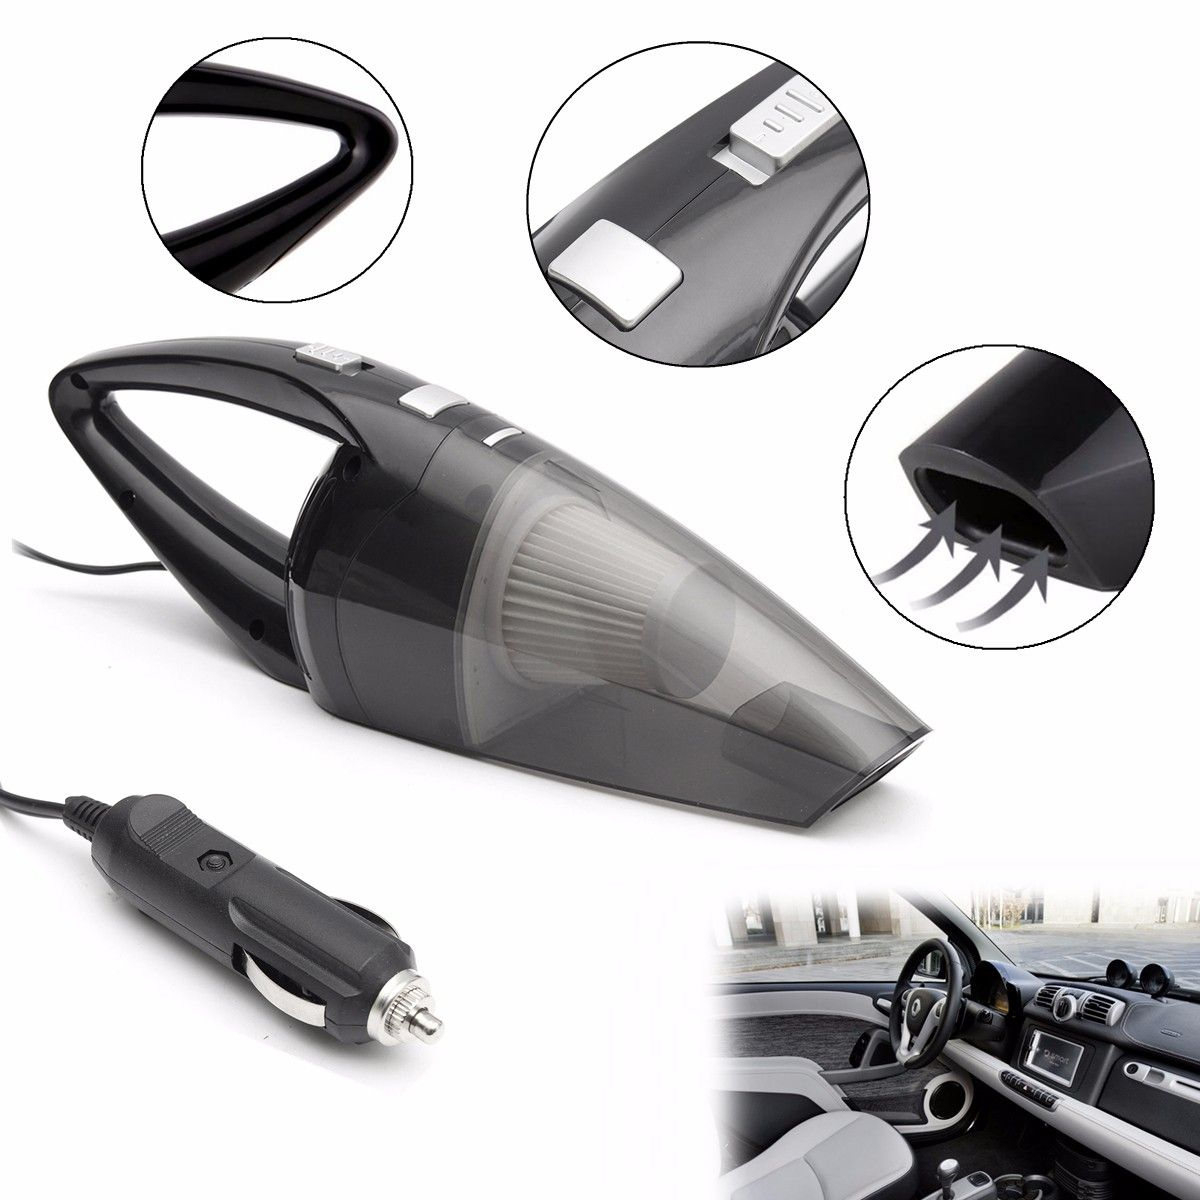 120W Portable Car Vacuum Cleaner Wet And Dry Dual Use Auto Cigarette Lighter Hepa Filter 12V Black White Blue Gray